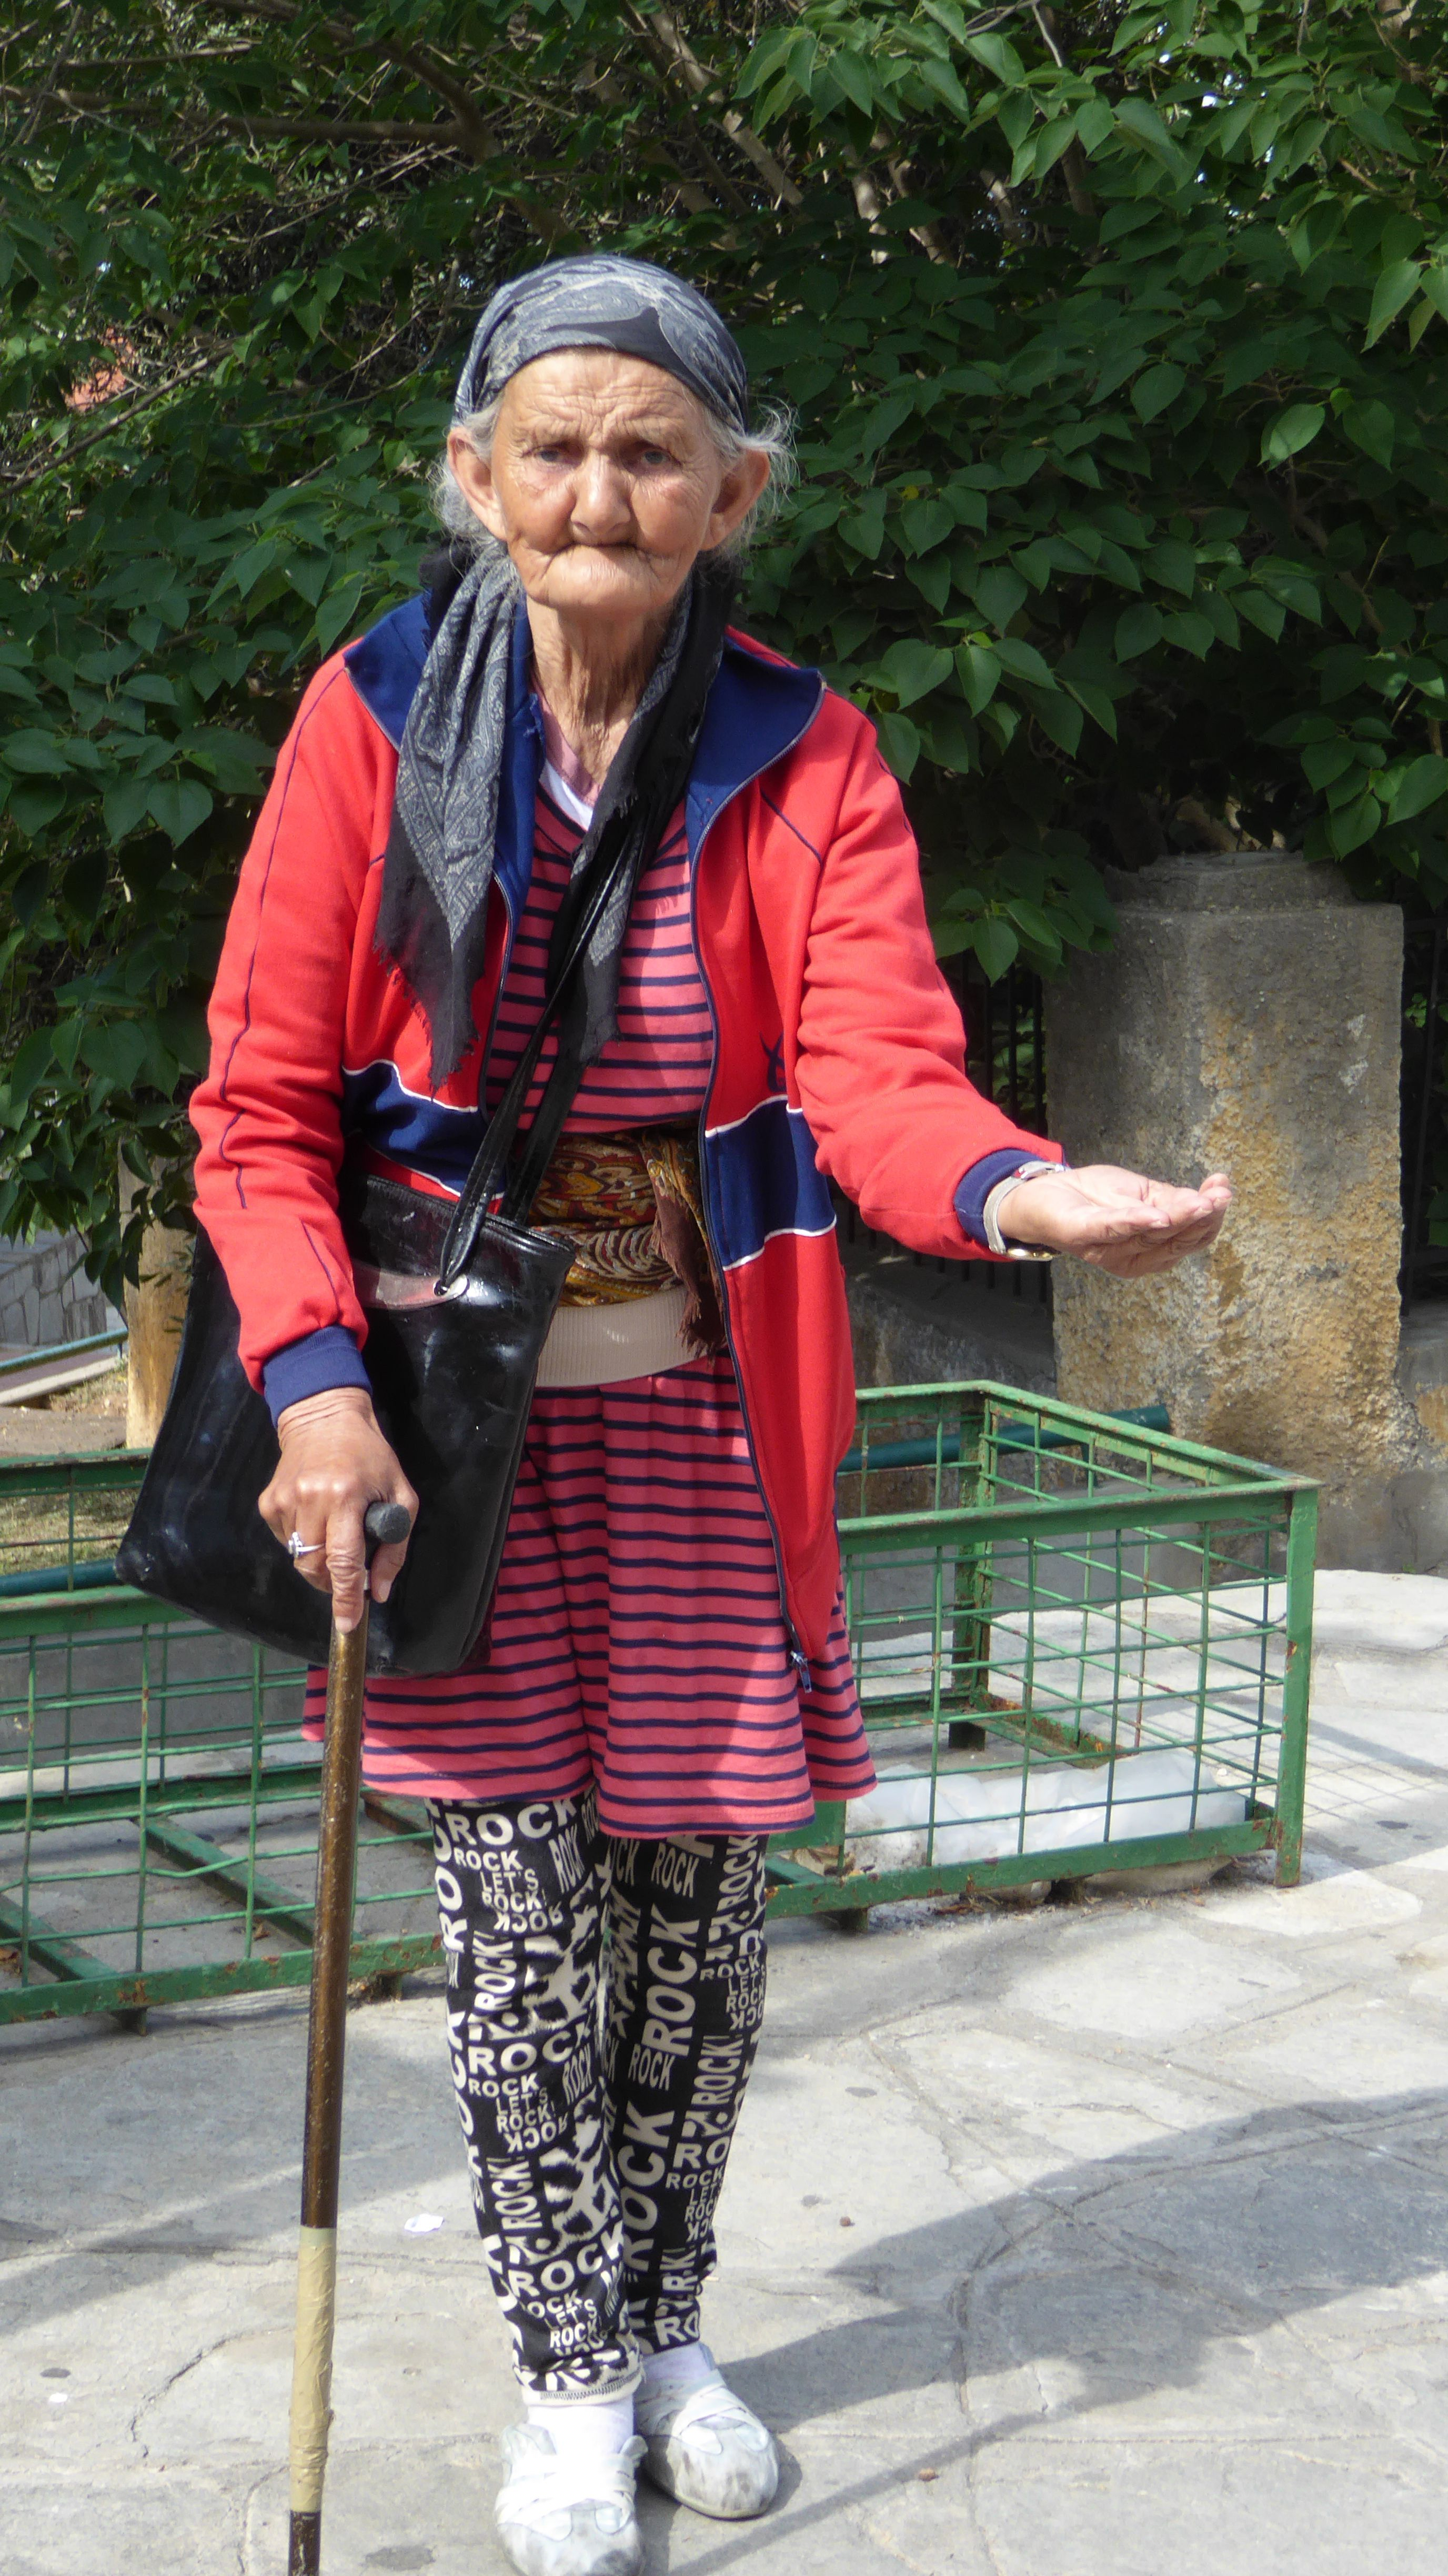 Lady Beggar At Walls Of Thessaloniki Greece Travel Patches International Travel Lady